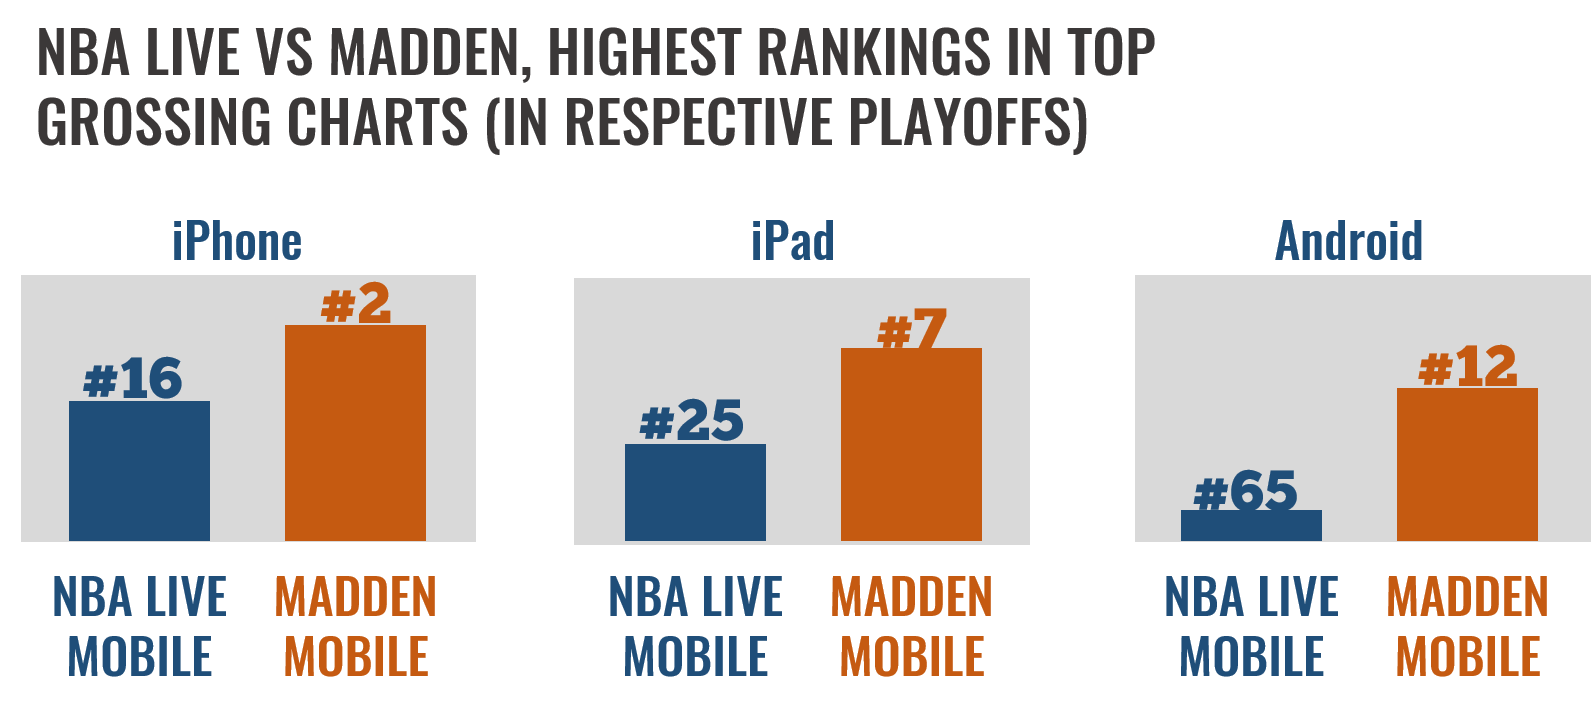 During its peak time (playoffs), Madden Mobile is able to be a Top 10 game on iOS, whereas NBA Live Mobile is not (US Top Grossing Figures)